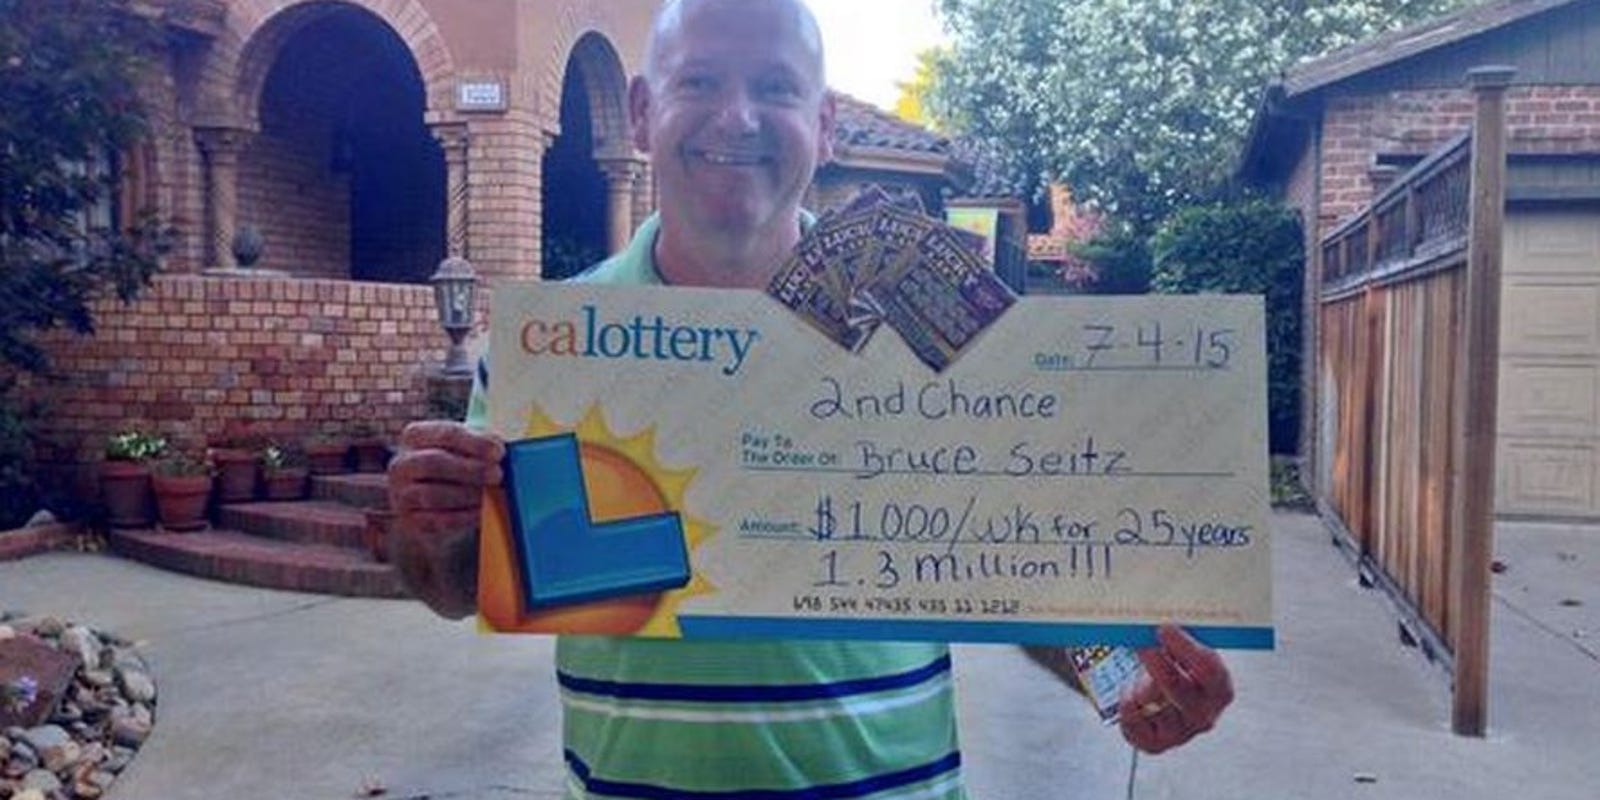 Stockton man turns losing lotto ticket into more than $1M